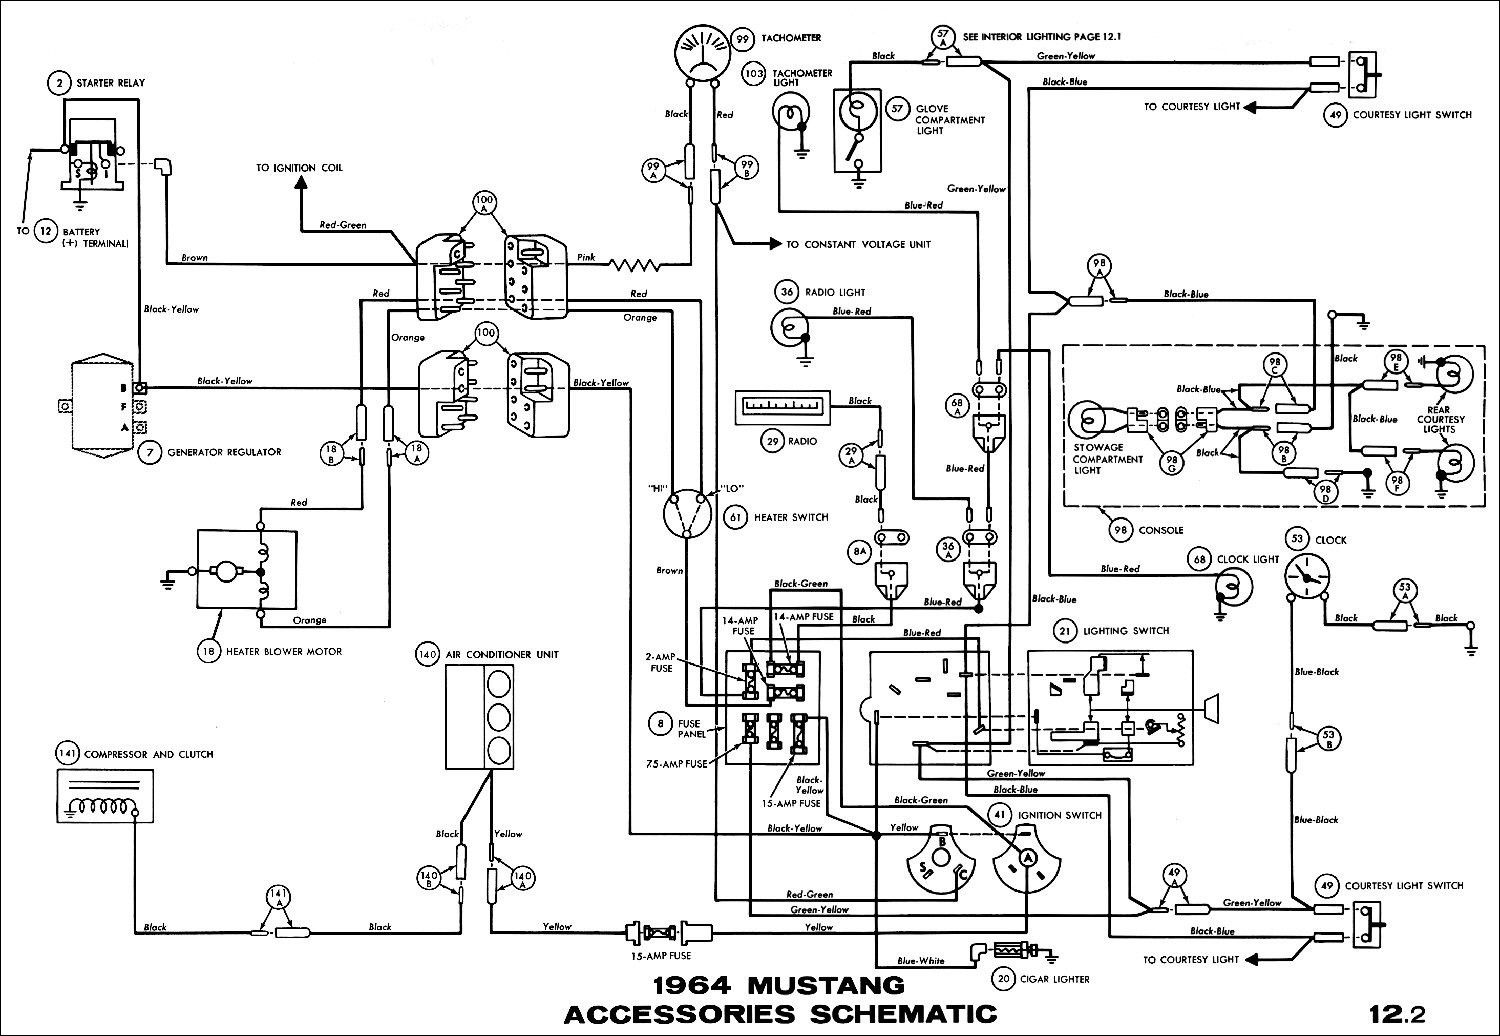 awesome 1966 ford mustang wiring diagram in 2020 | 1965 mustang, mustang,  1966 ford mustang  pinterest